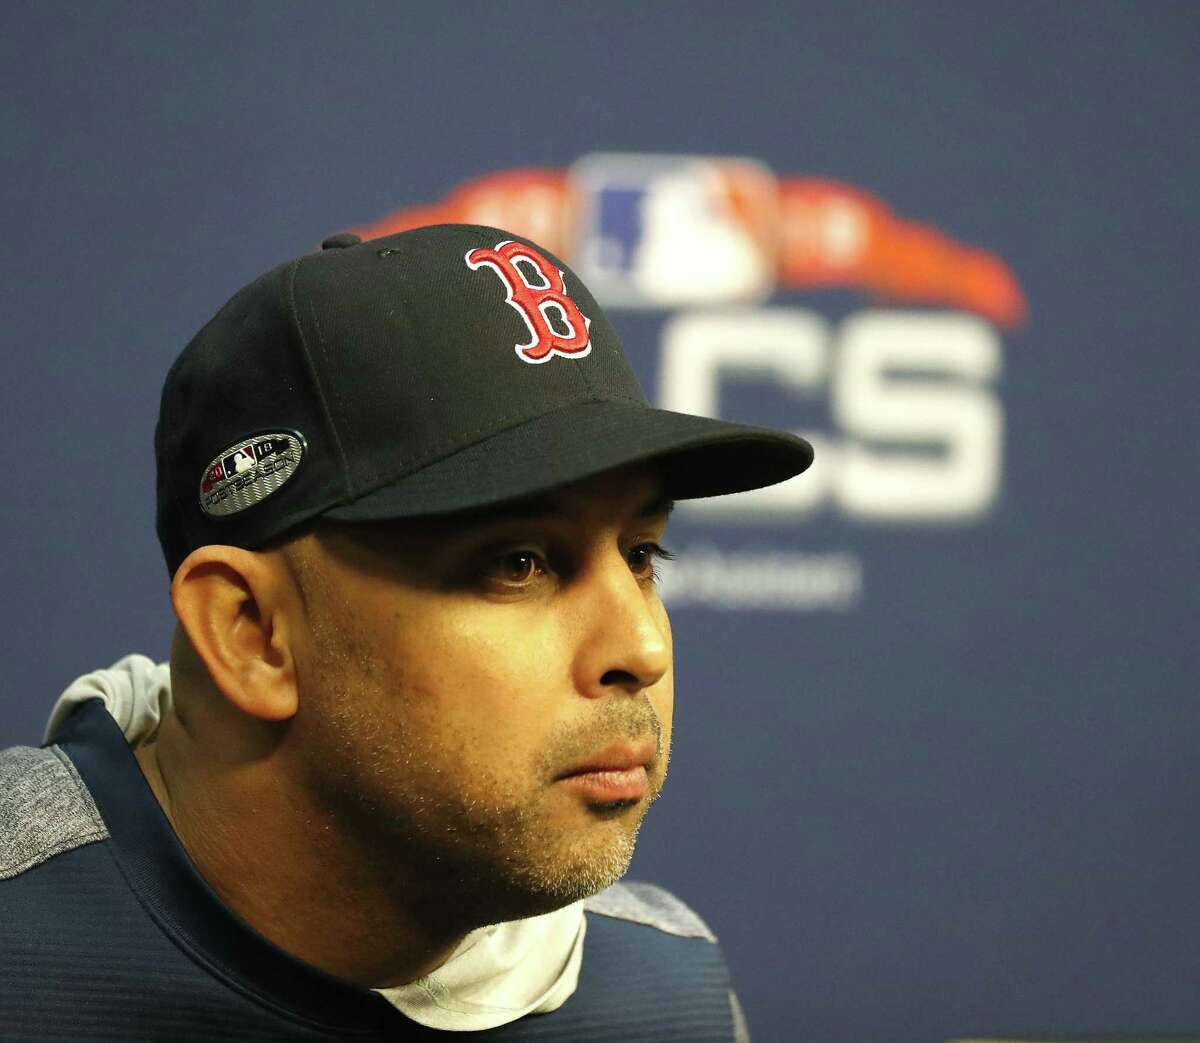 Boston Red Sox manager Alex Cora speaks to the media during a press conference as the Boston Red Sox worked out ahead of Tuesday's Game 3 of the American League Championship Series at Minute Maid Park on Monday, Oct. 15, 2018, in Houston.